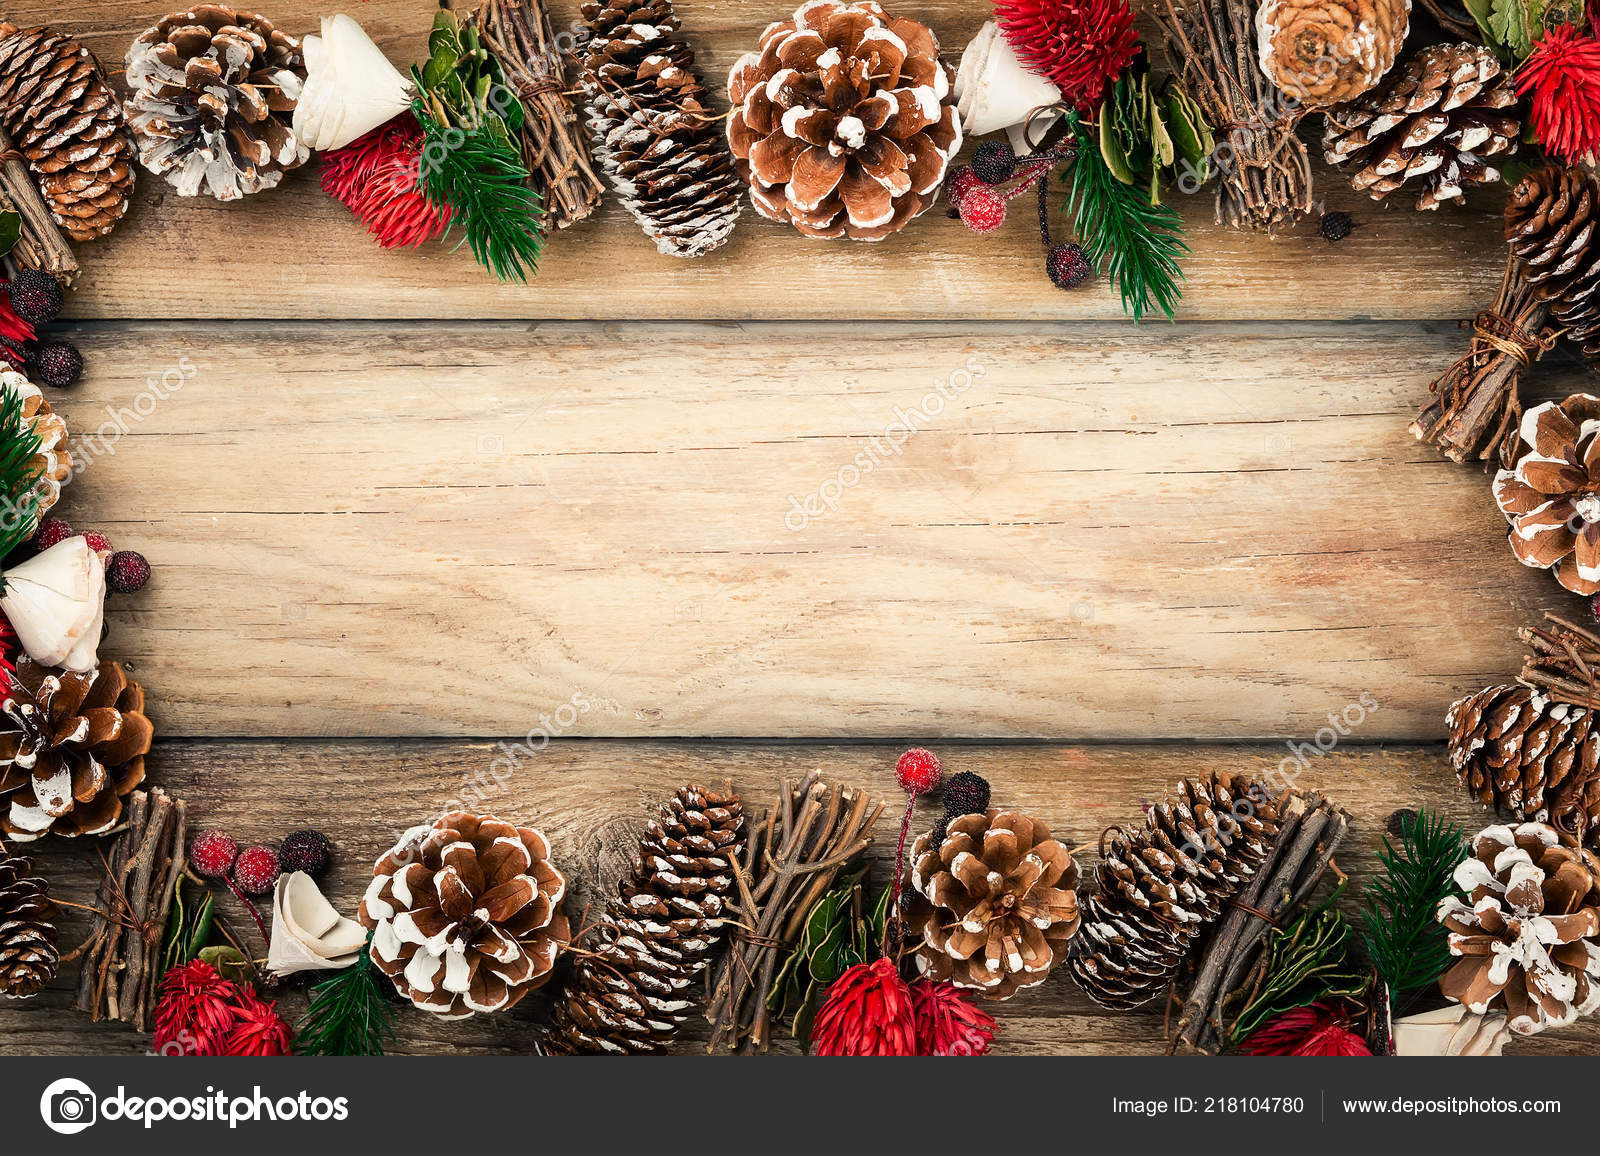 Winter Background Rustic Christmas Garland Using Pine Cones Dried Leaves Stock Photo Image By C Sarsmis 218104780